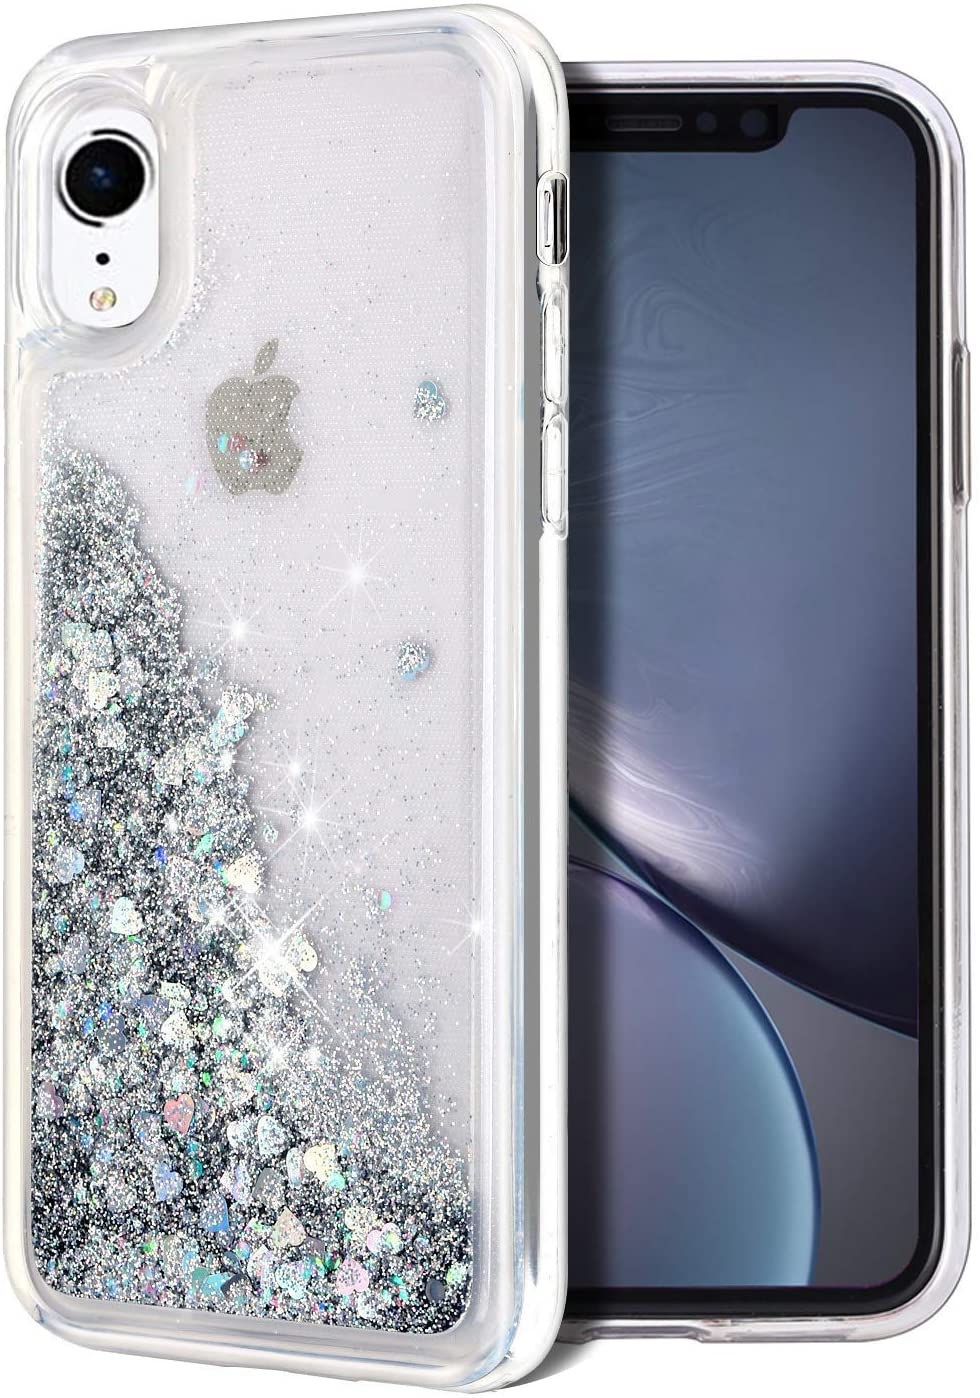 for iPhone XR Case, WORLDMOM Double Layer Design Bling Flowing Liquid Floating Sparkle Colorful Glitter Waterfall TPU Protective Phone Case for Apple iPhone XR [6.1 Inch 2018], Silver